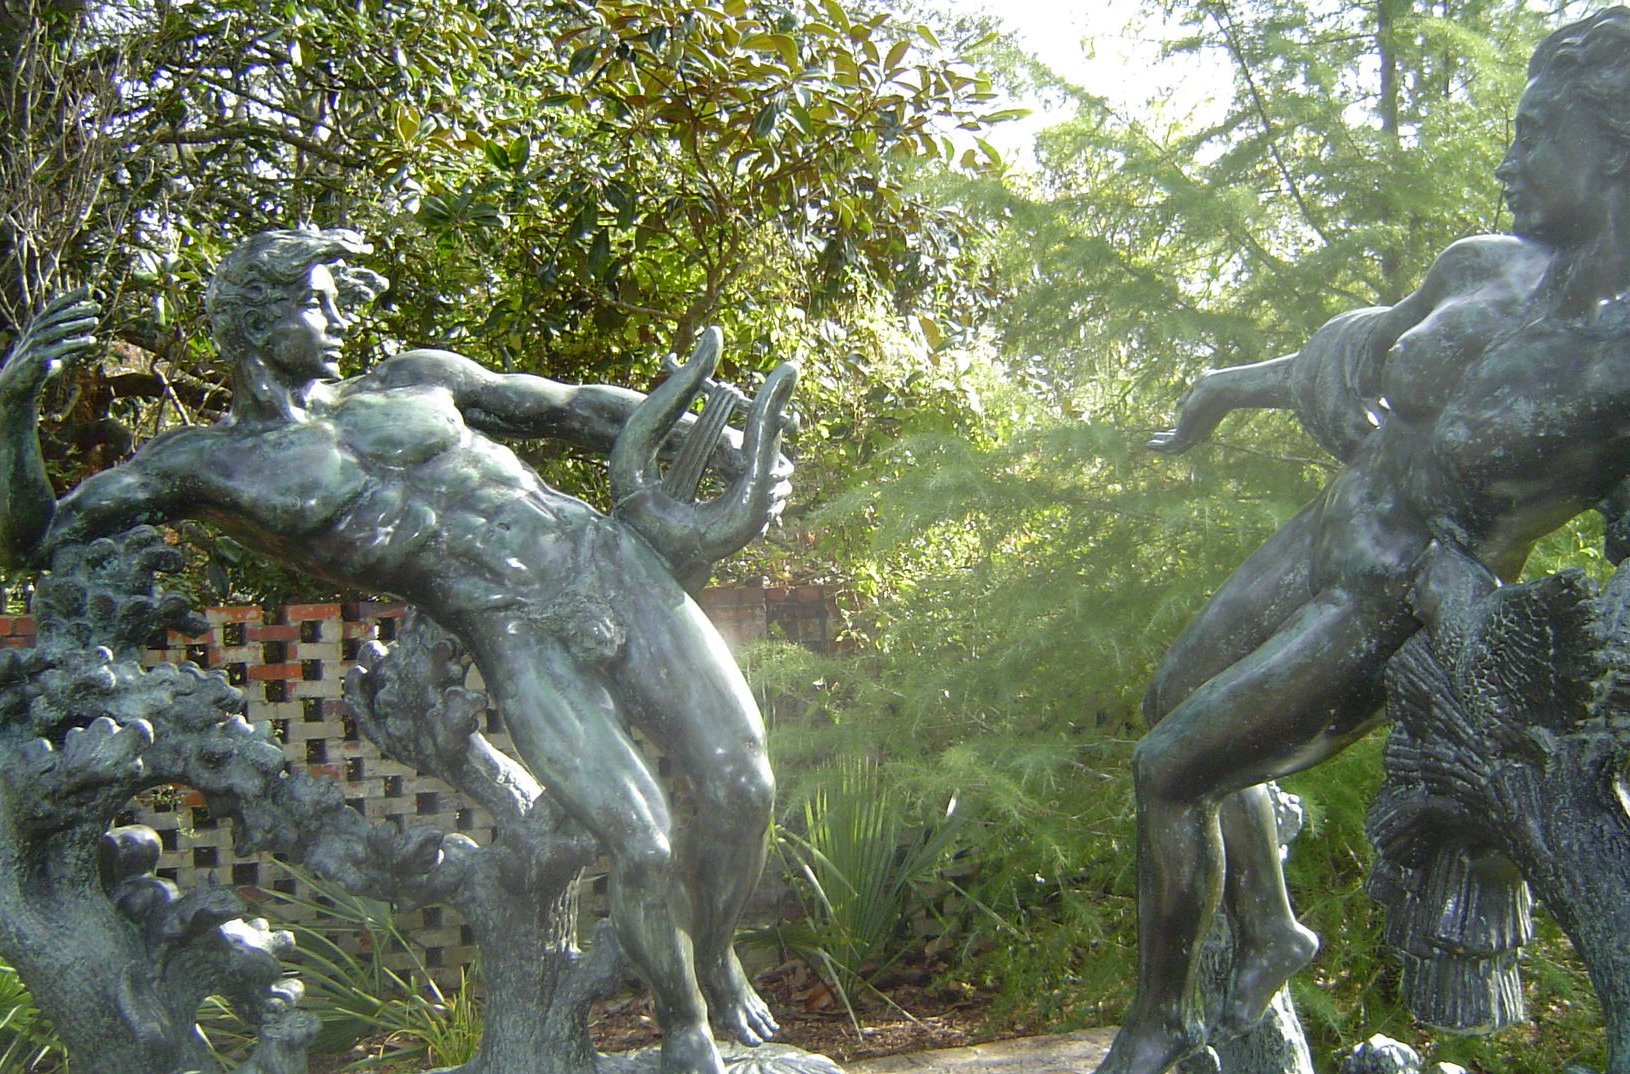 File:Brookgreen Gardens Sculpture22